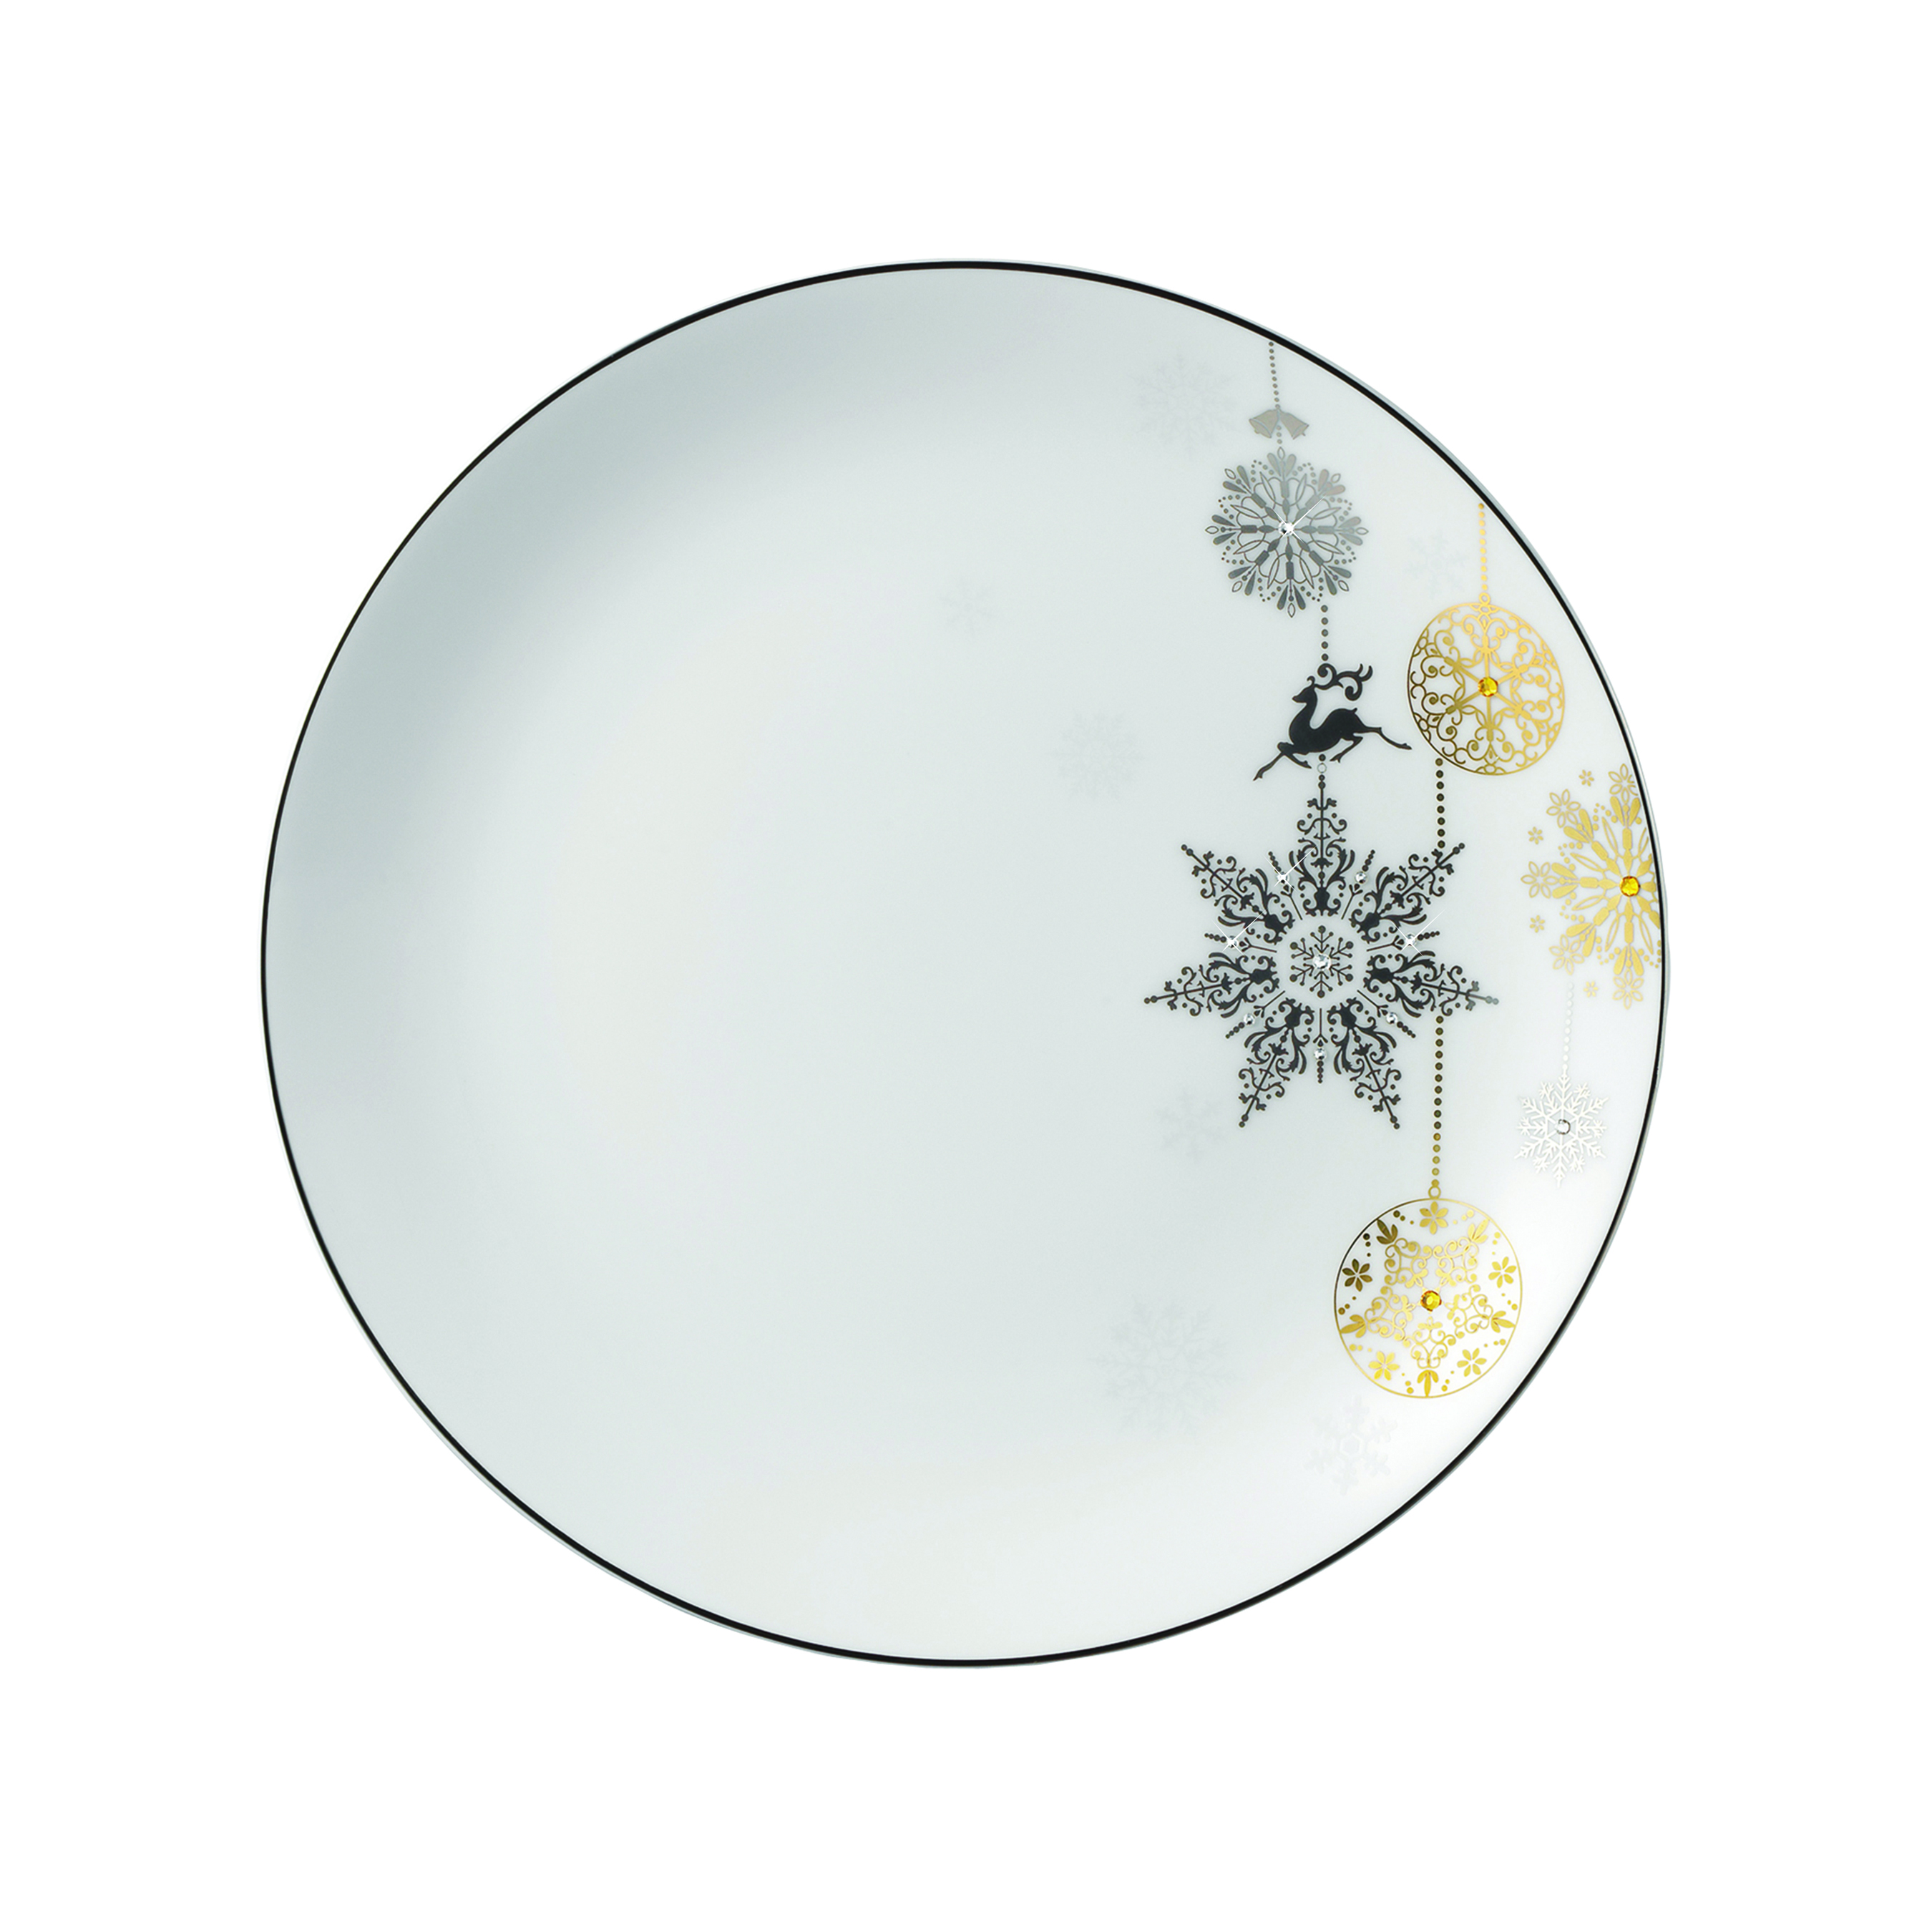 Winter Crystal Salad/Dessert Plate 8 in  sc 1 st  Gracious Style & Prouna Winter Crystal Dinnerware | Gracious Style